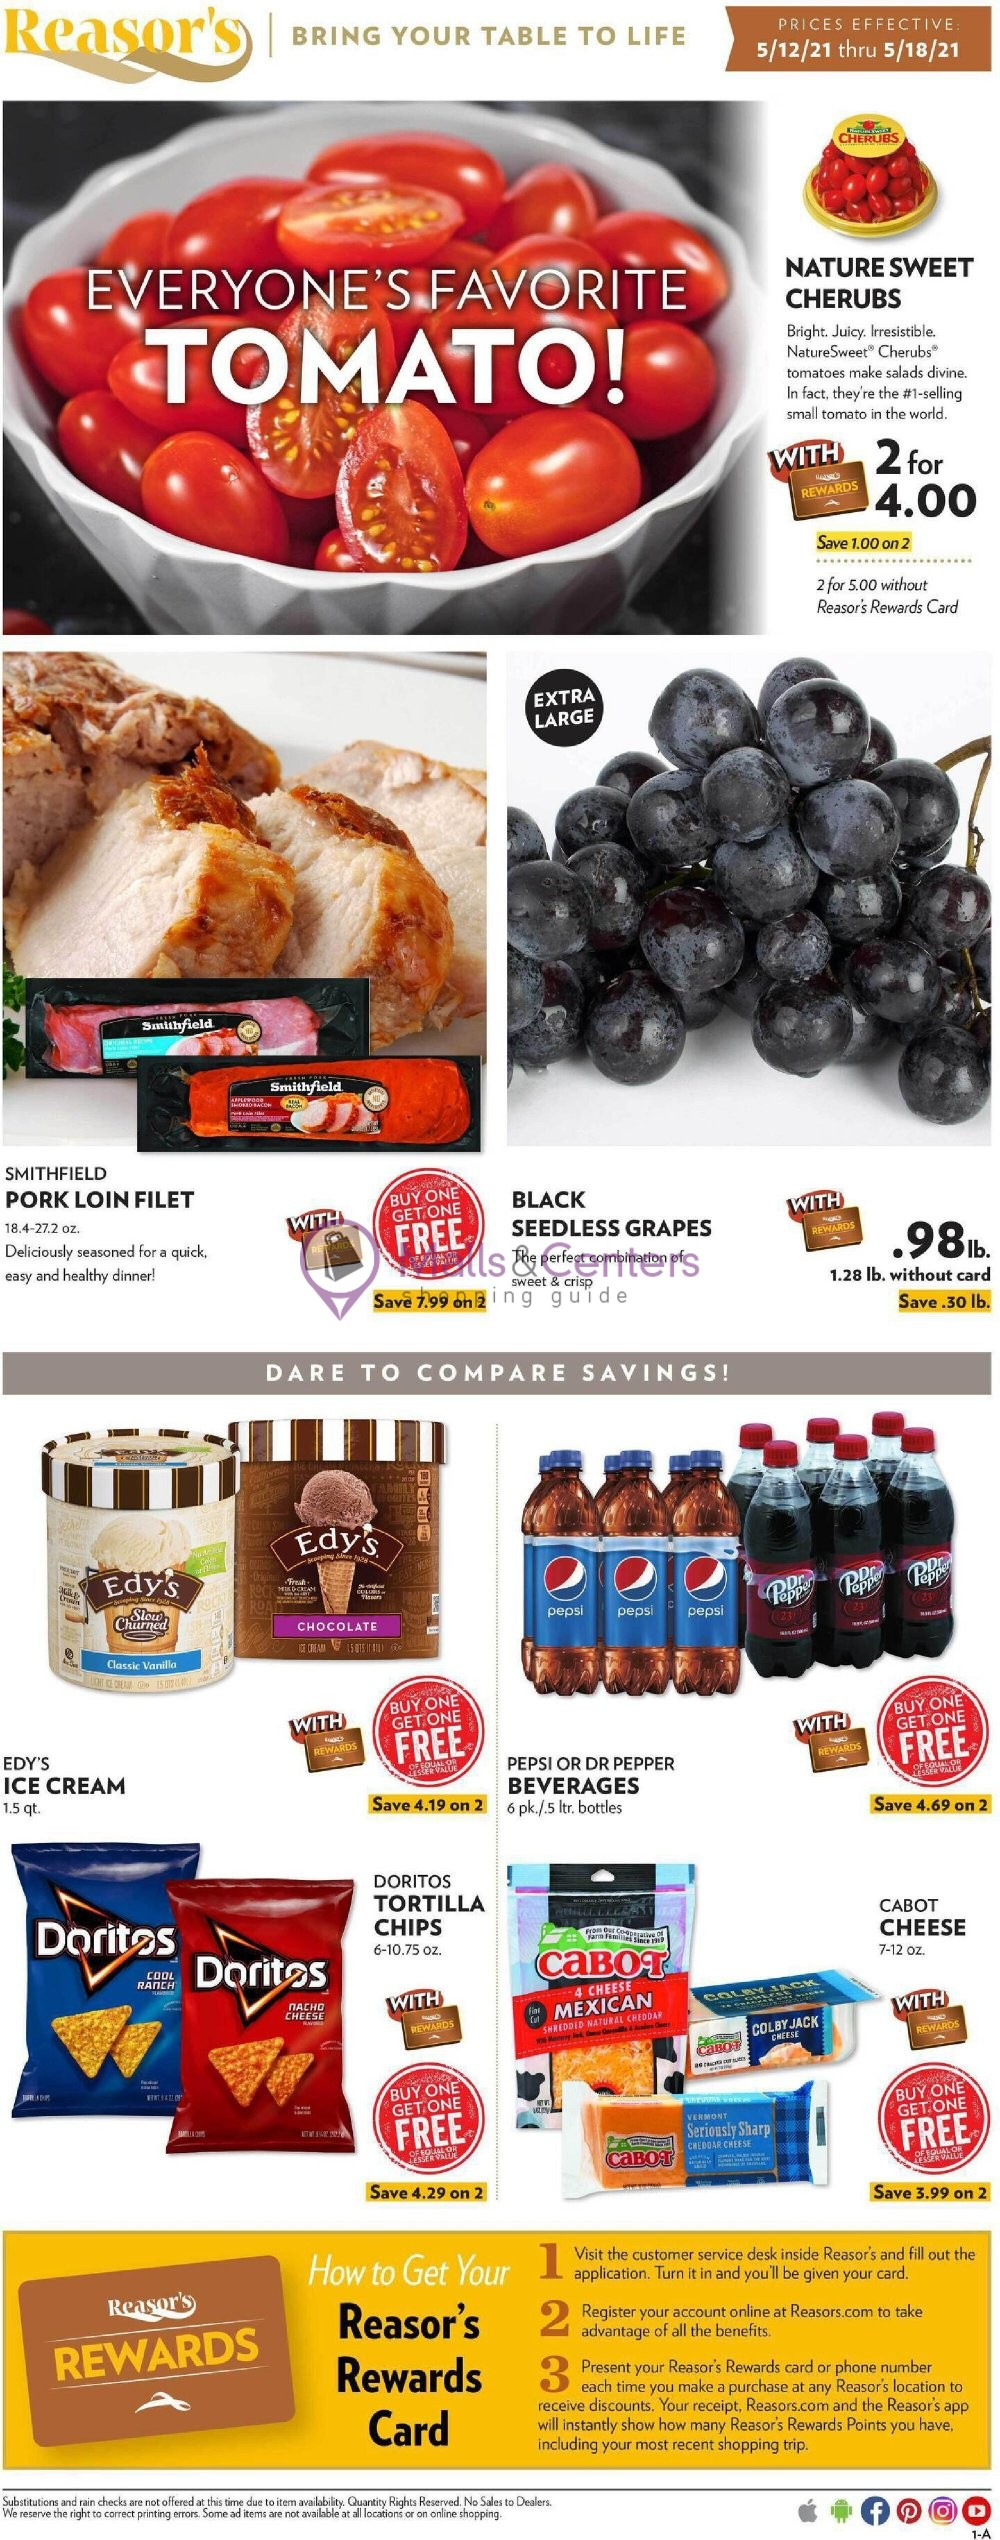 weekly ads Reasor's - page 1 - mallscenters.com